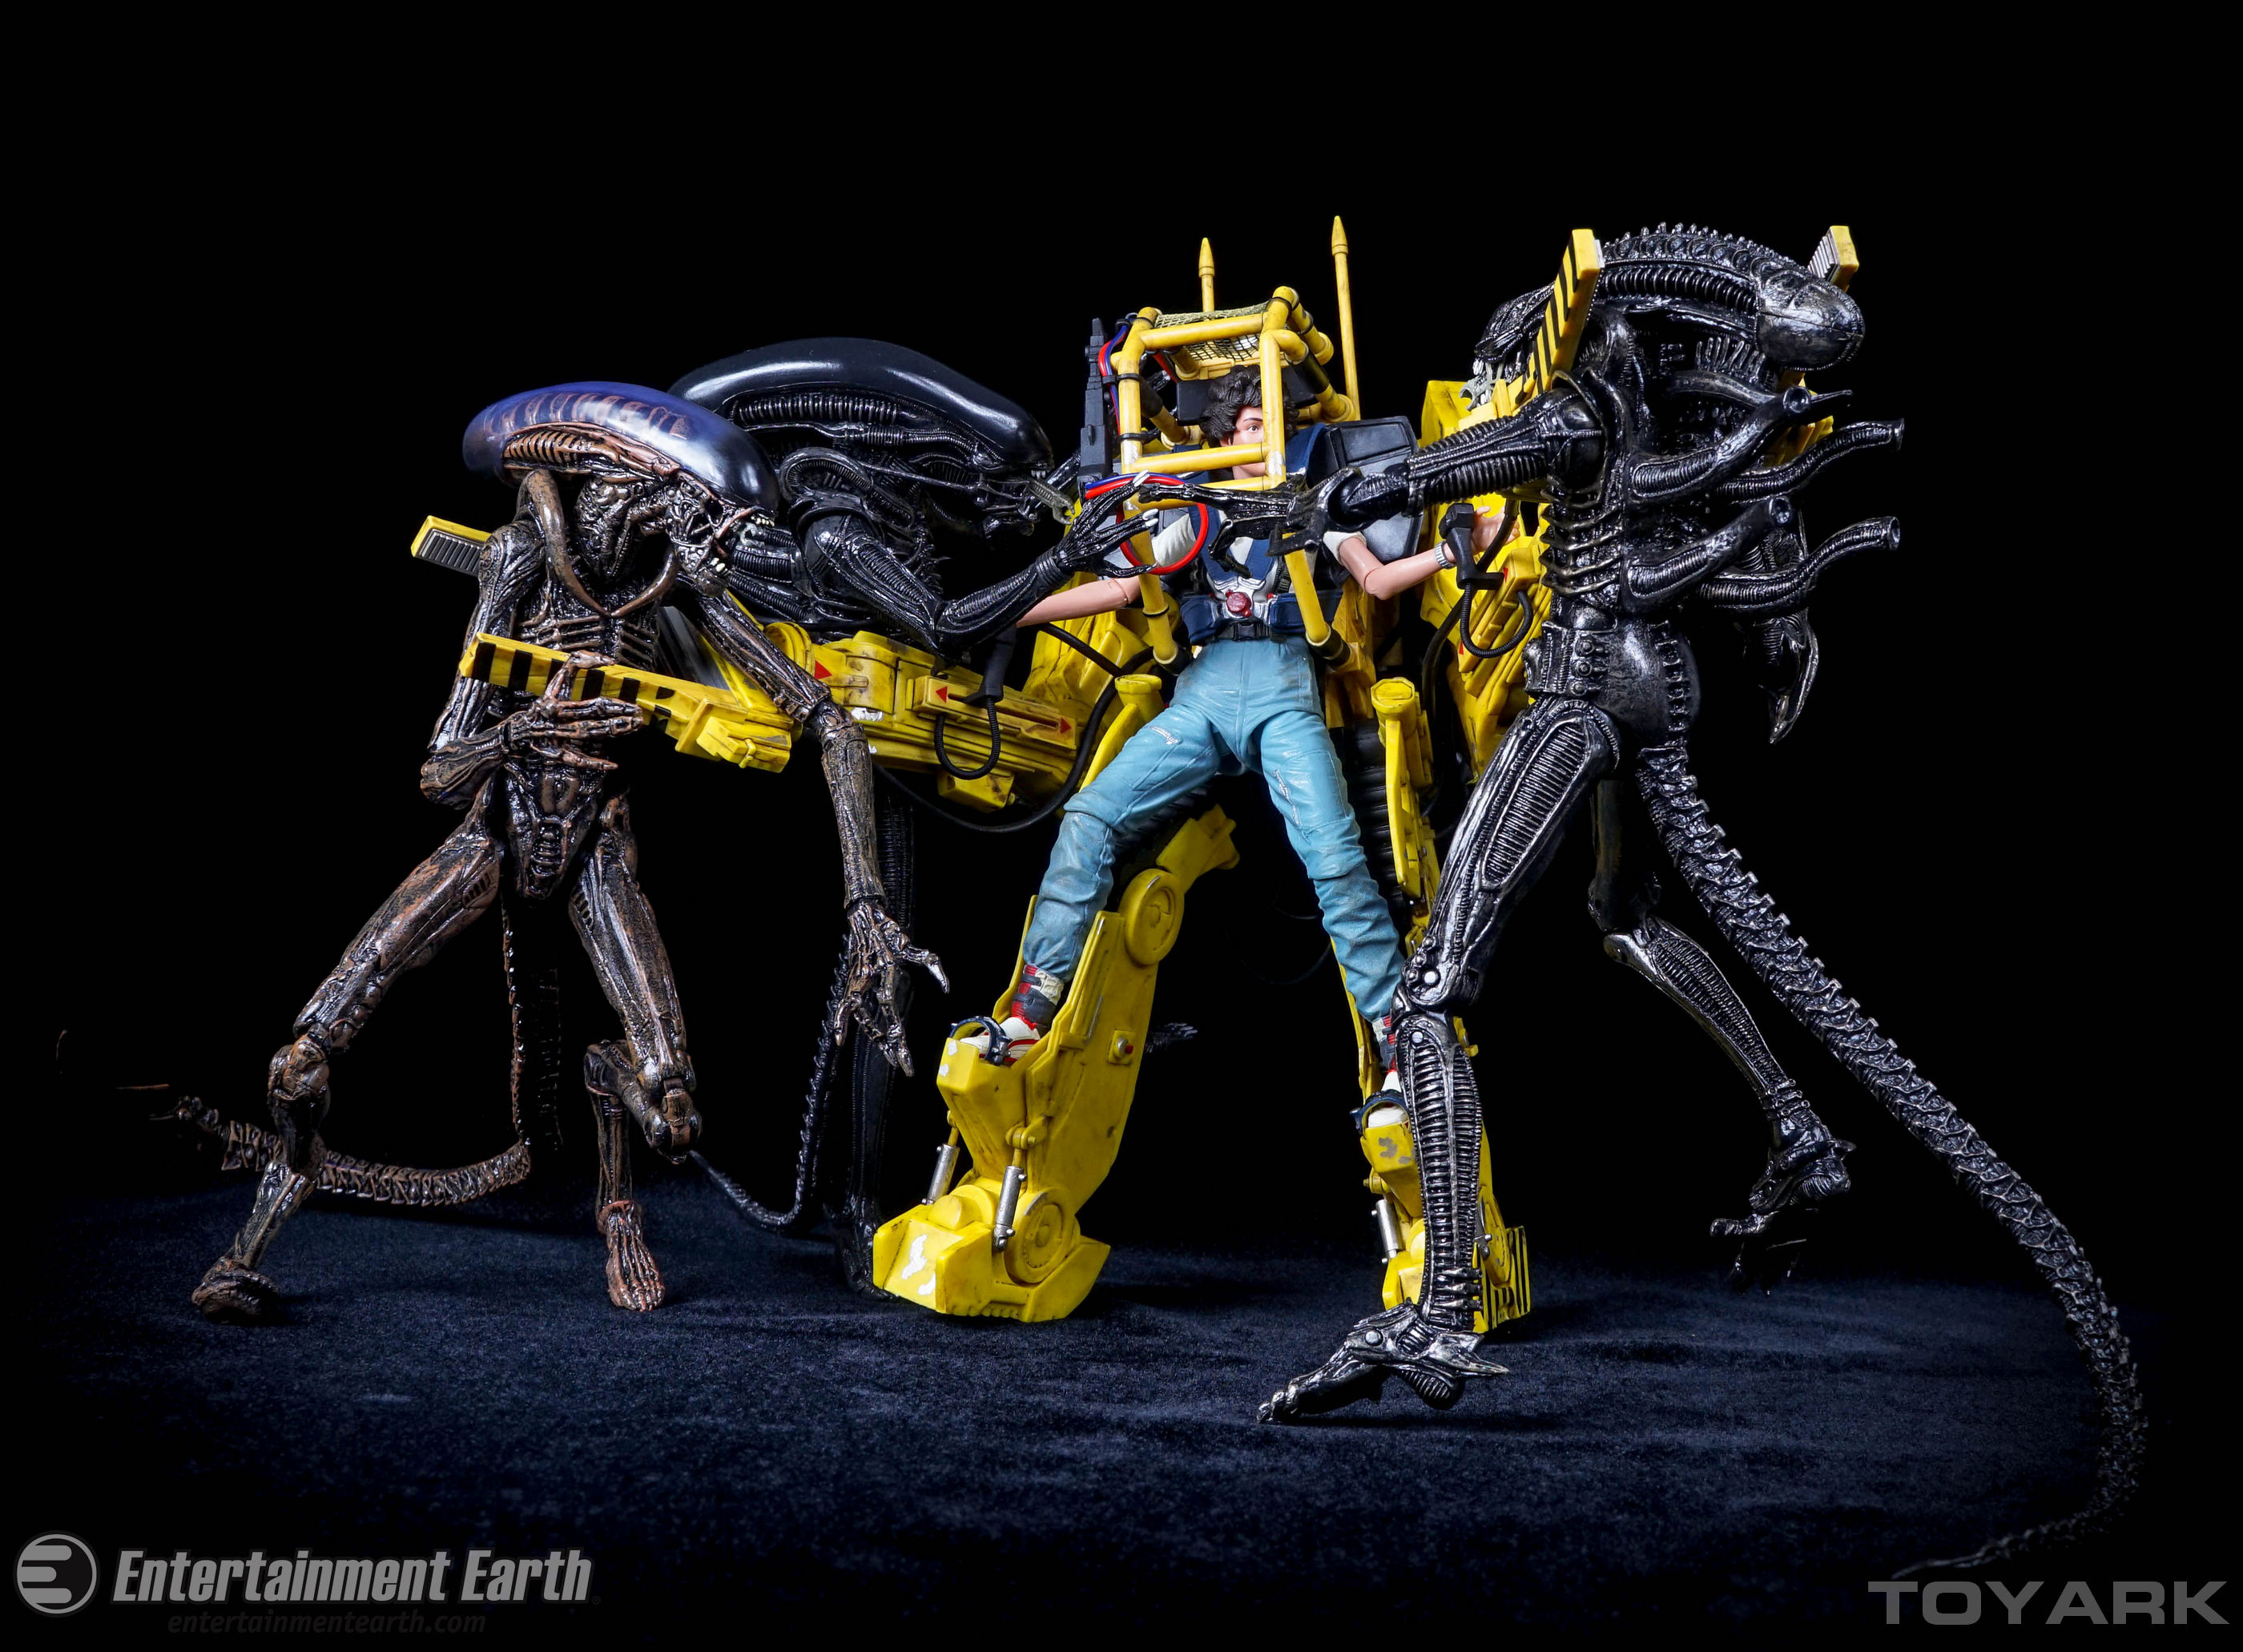 http://news.toyark.com/wp-content/uploads/sites/4/2015/10/NECA-Aliens-Power-Loader-071.jpg